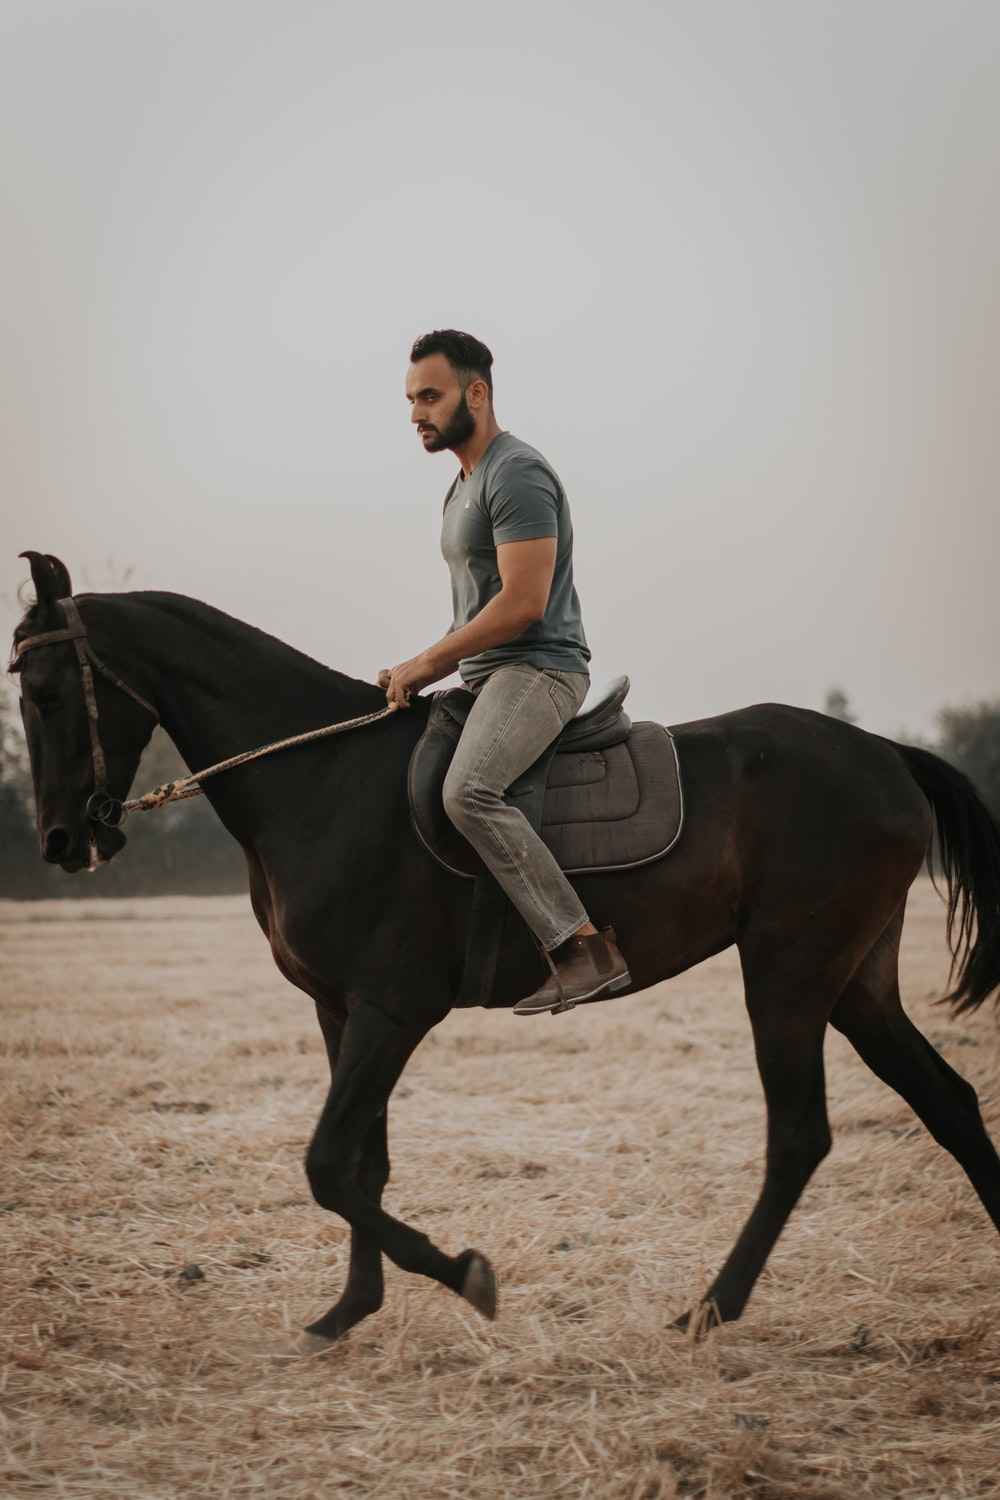 man in white t-shirt riding black horse during daytime